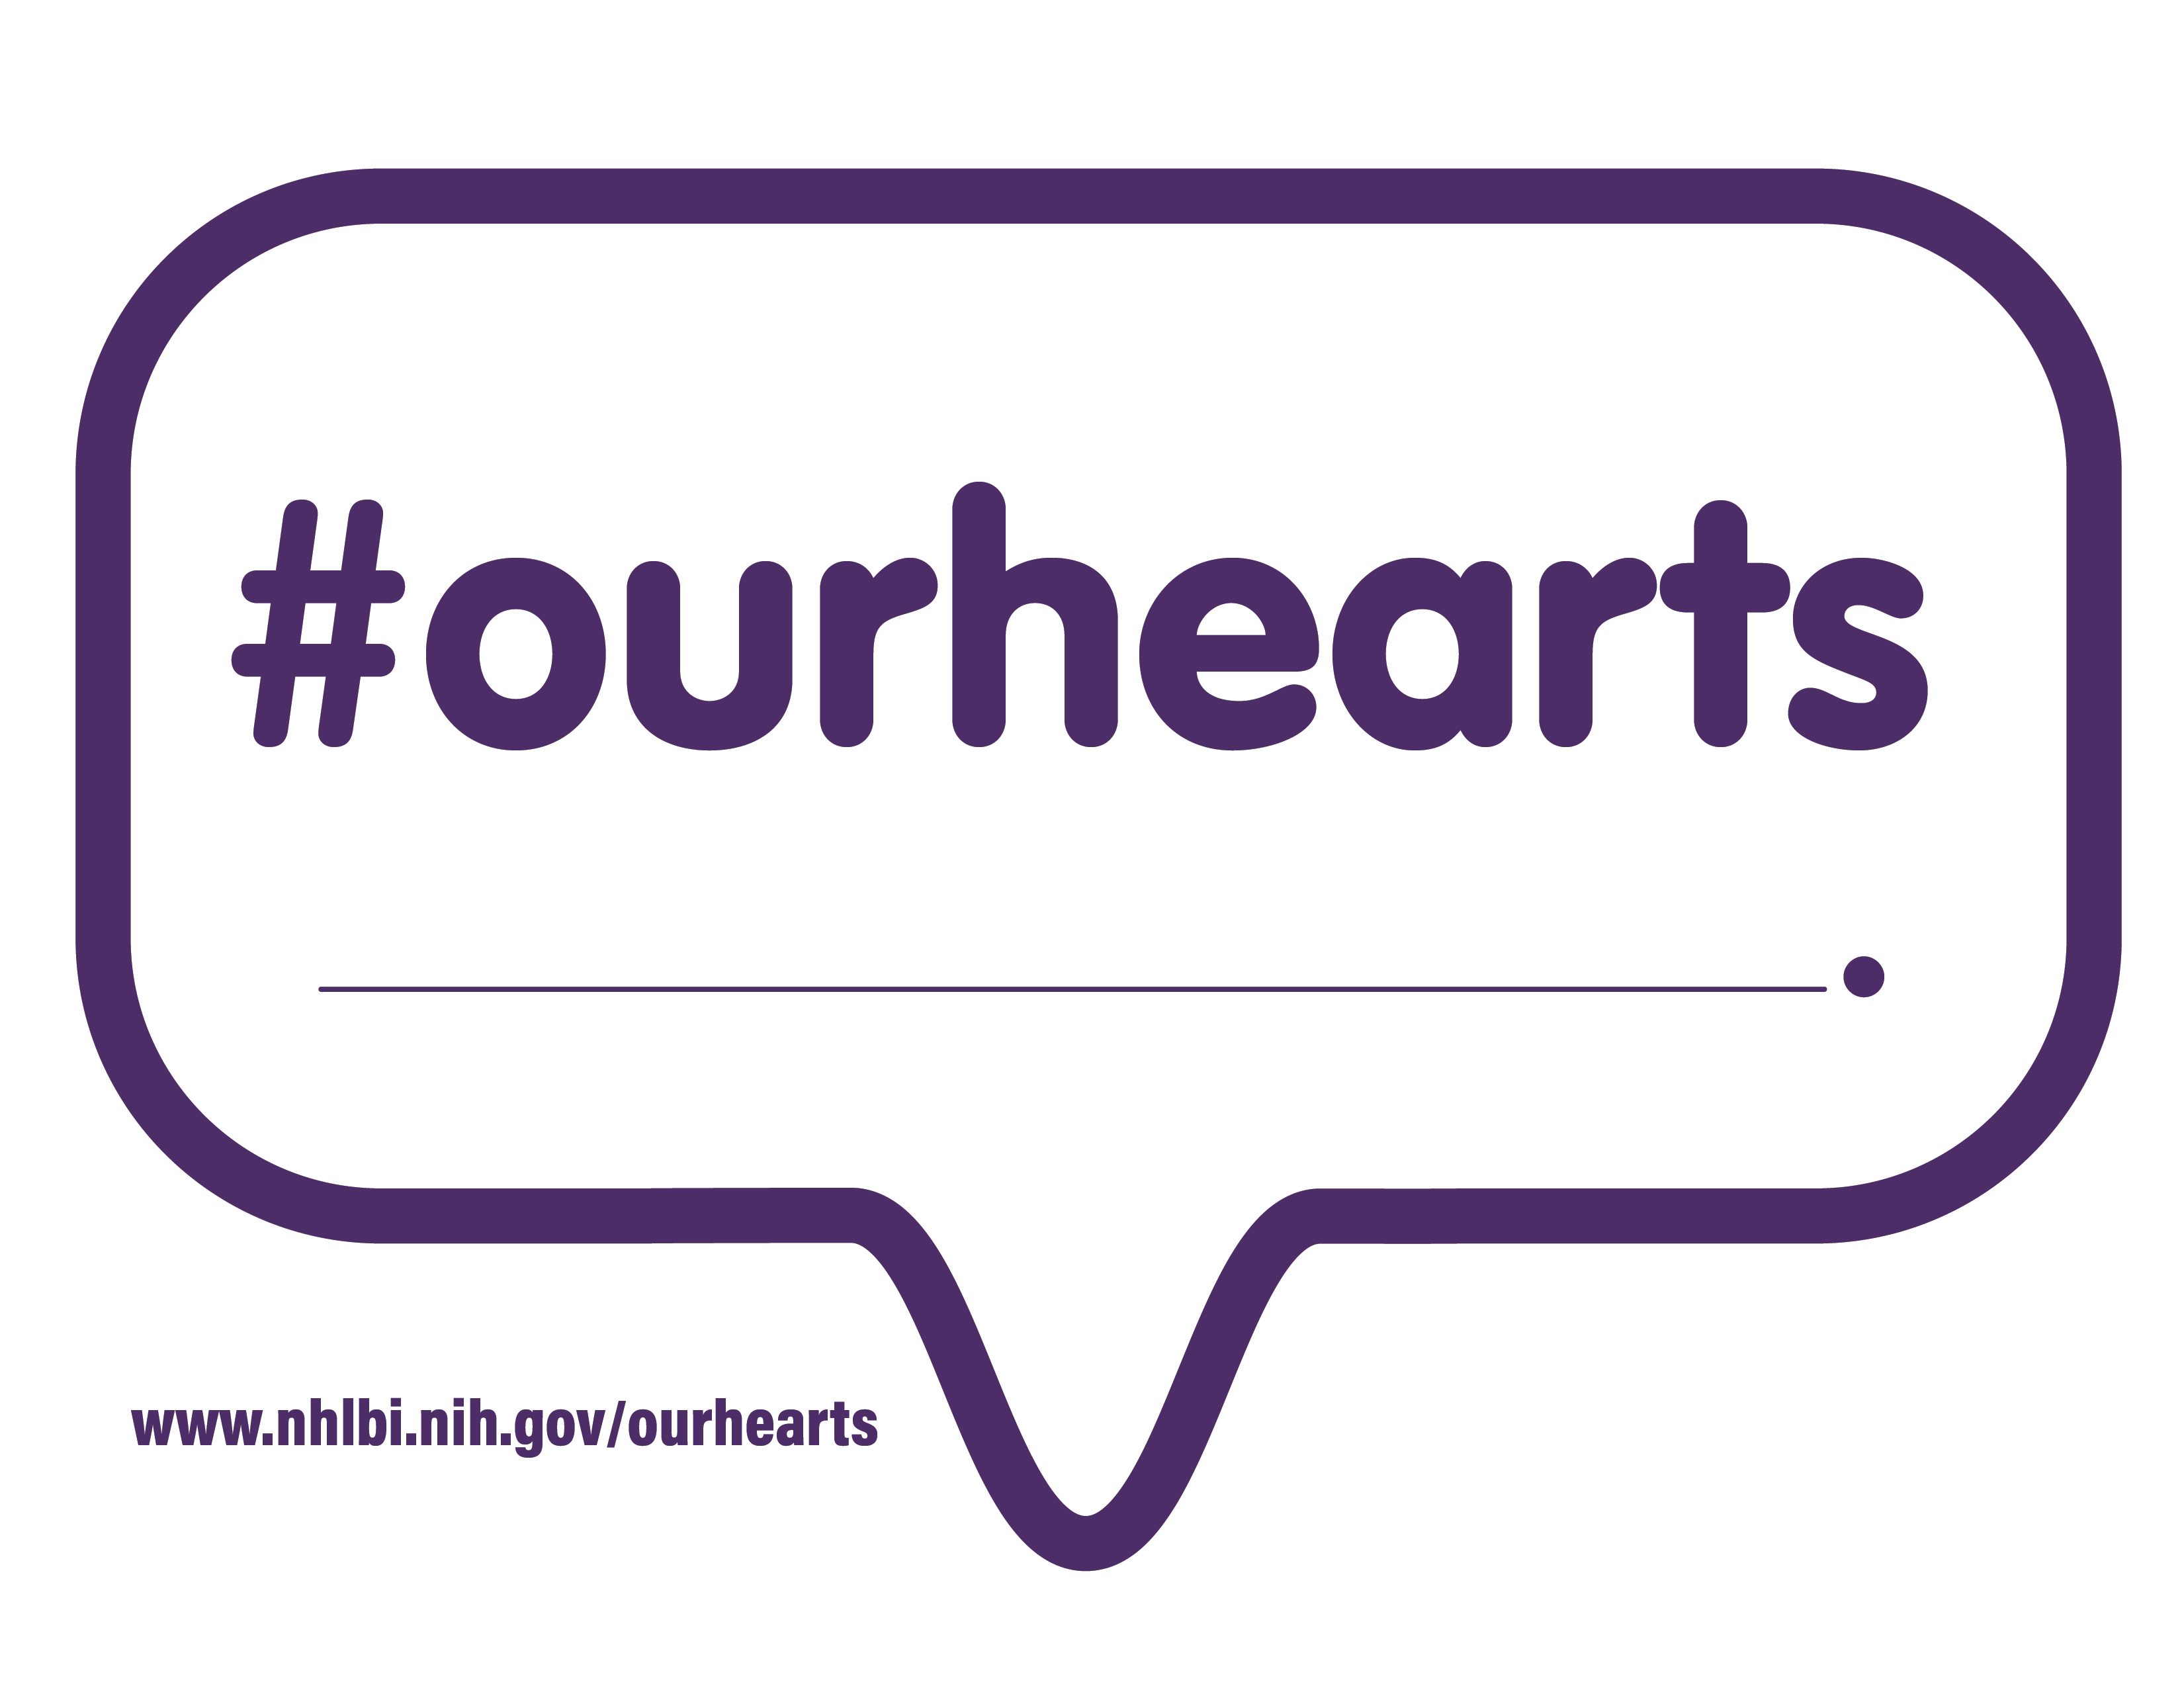 Blank Template with the #OurHearts logo